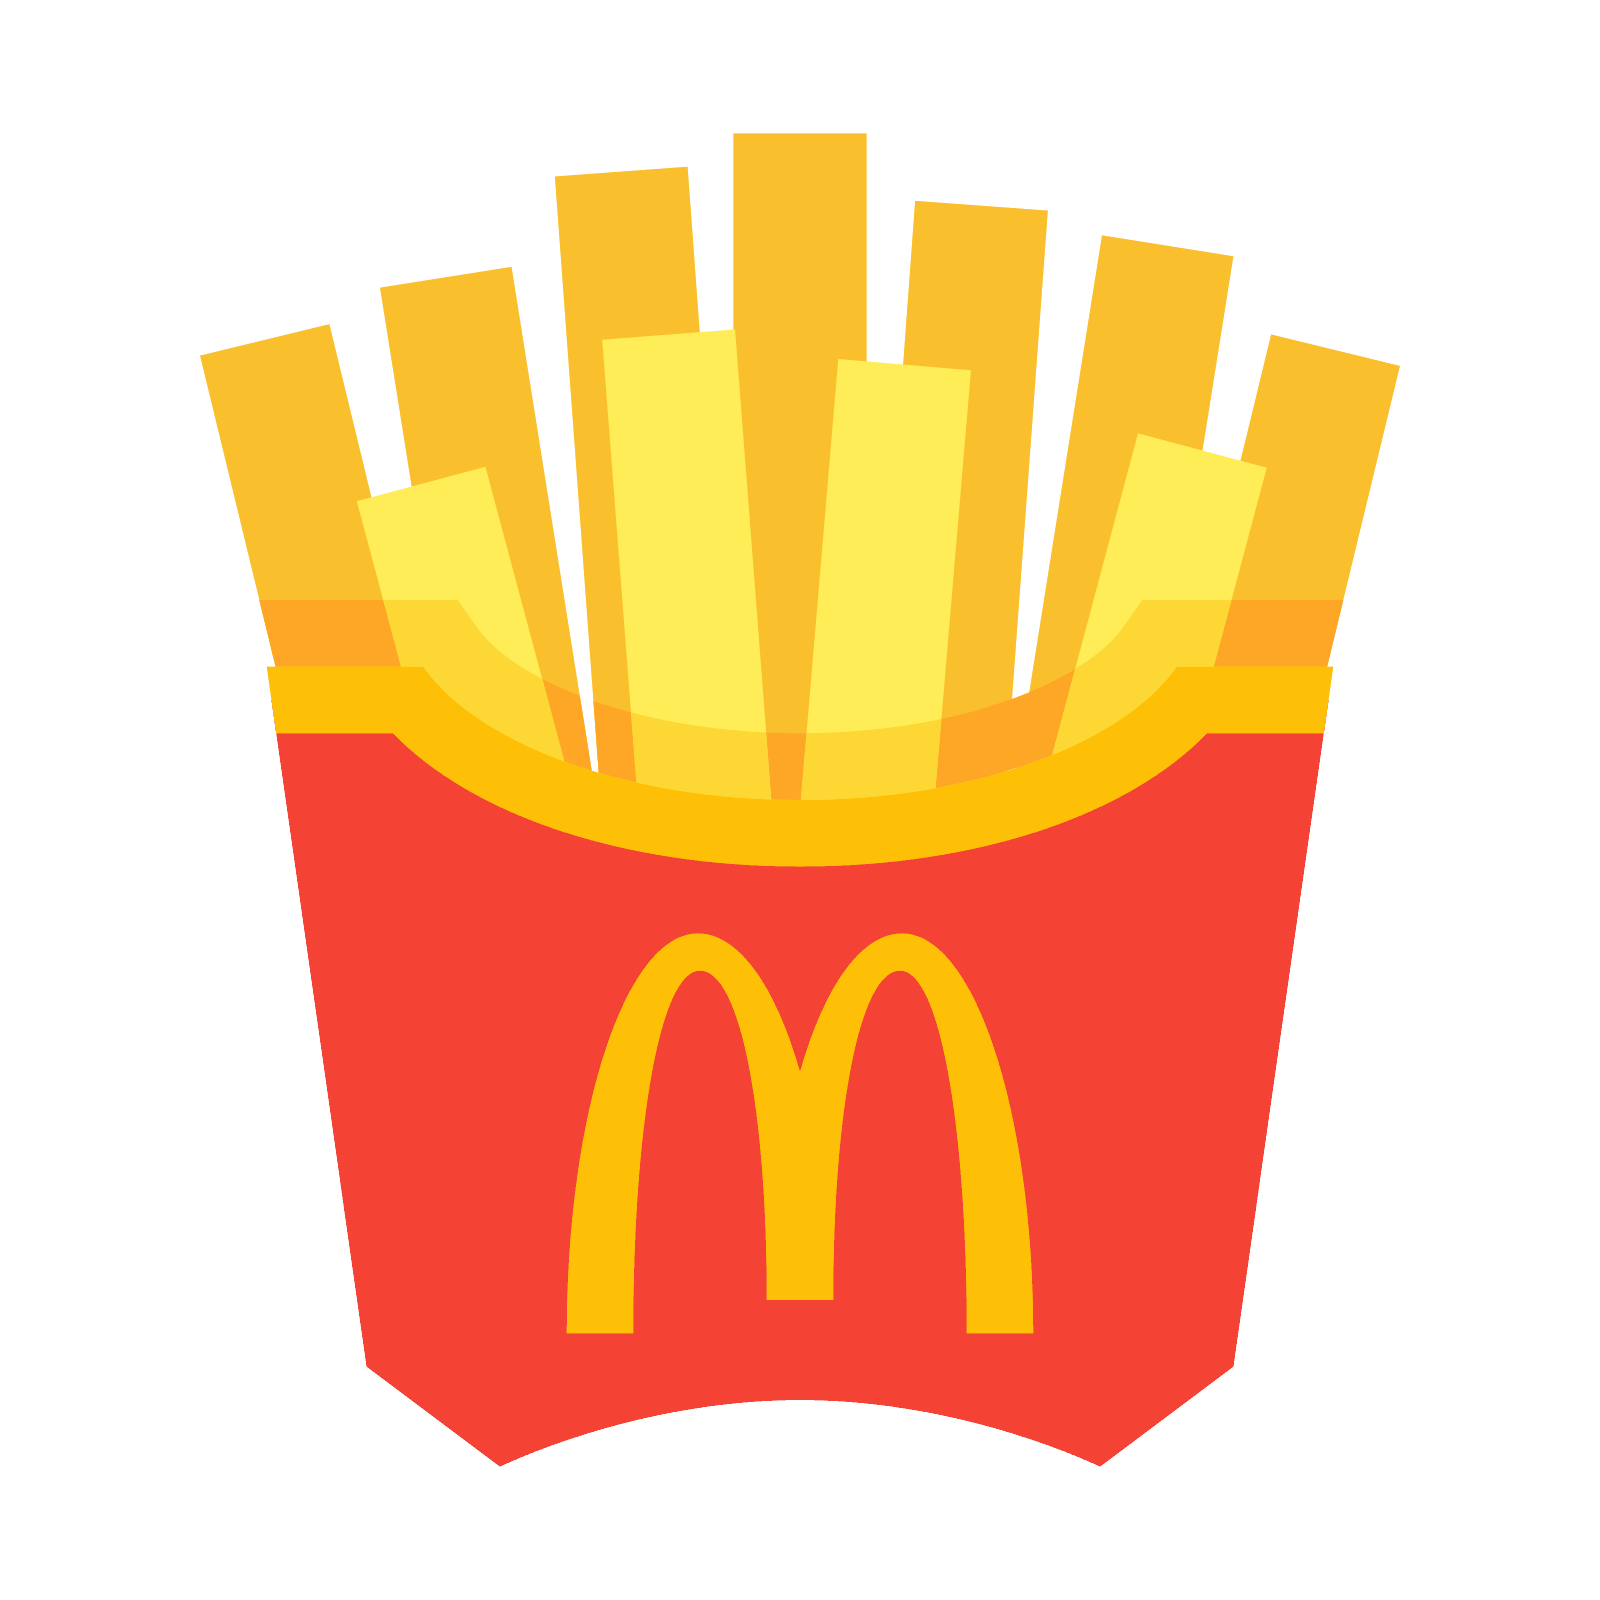 Emoji clipart fry. Mcdonald s french fries